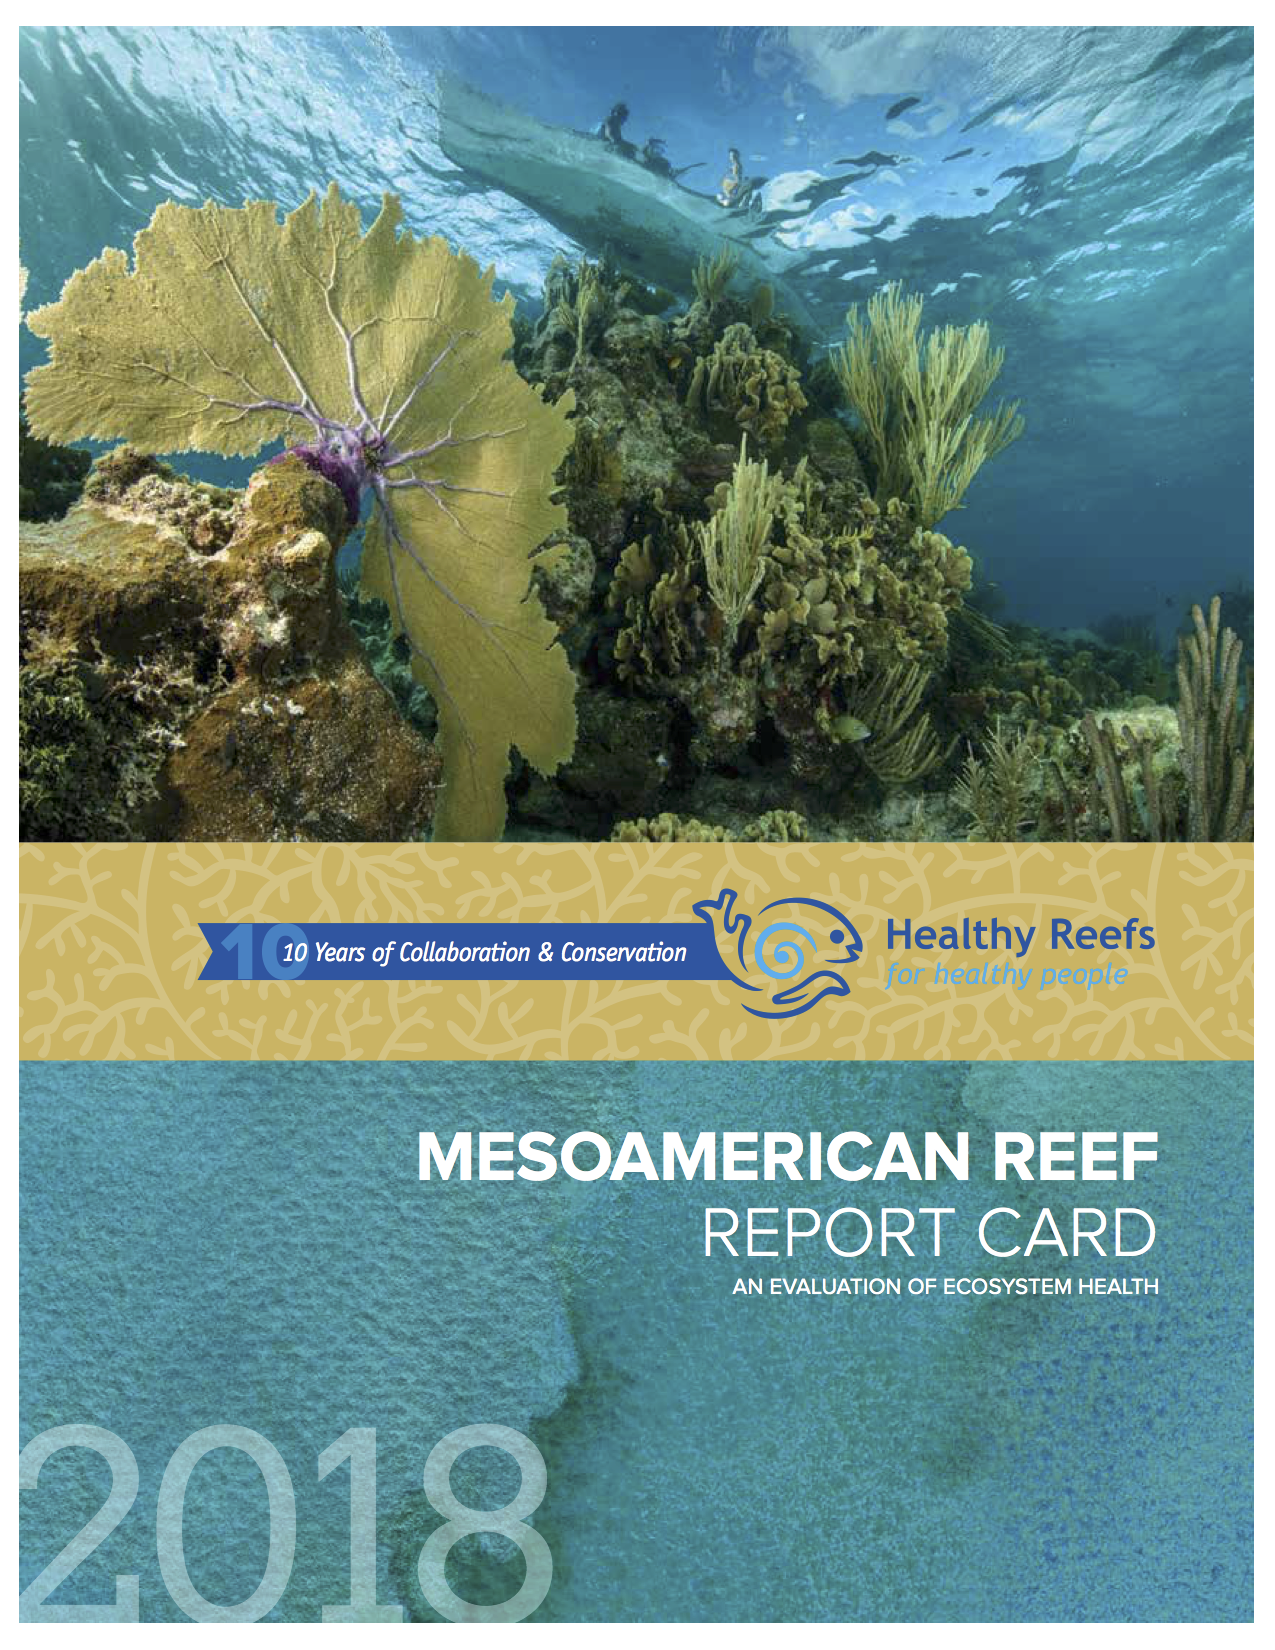 Healthy Reefs – Mesoamerican Reef Report Card 2018 Launch